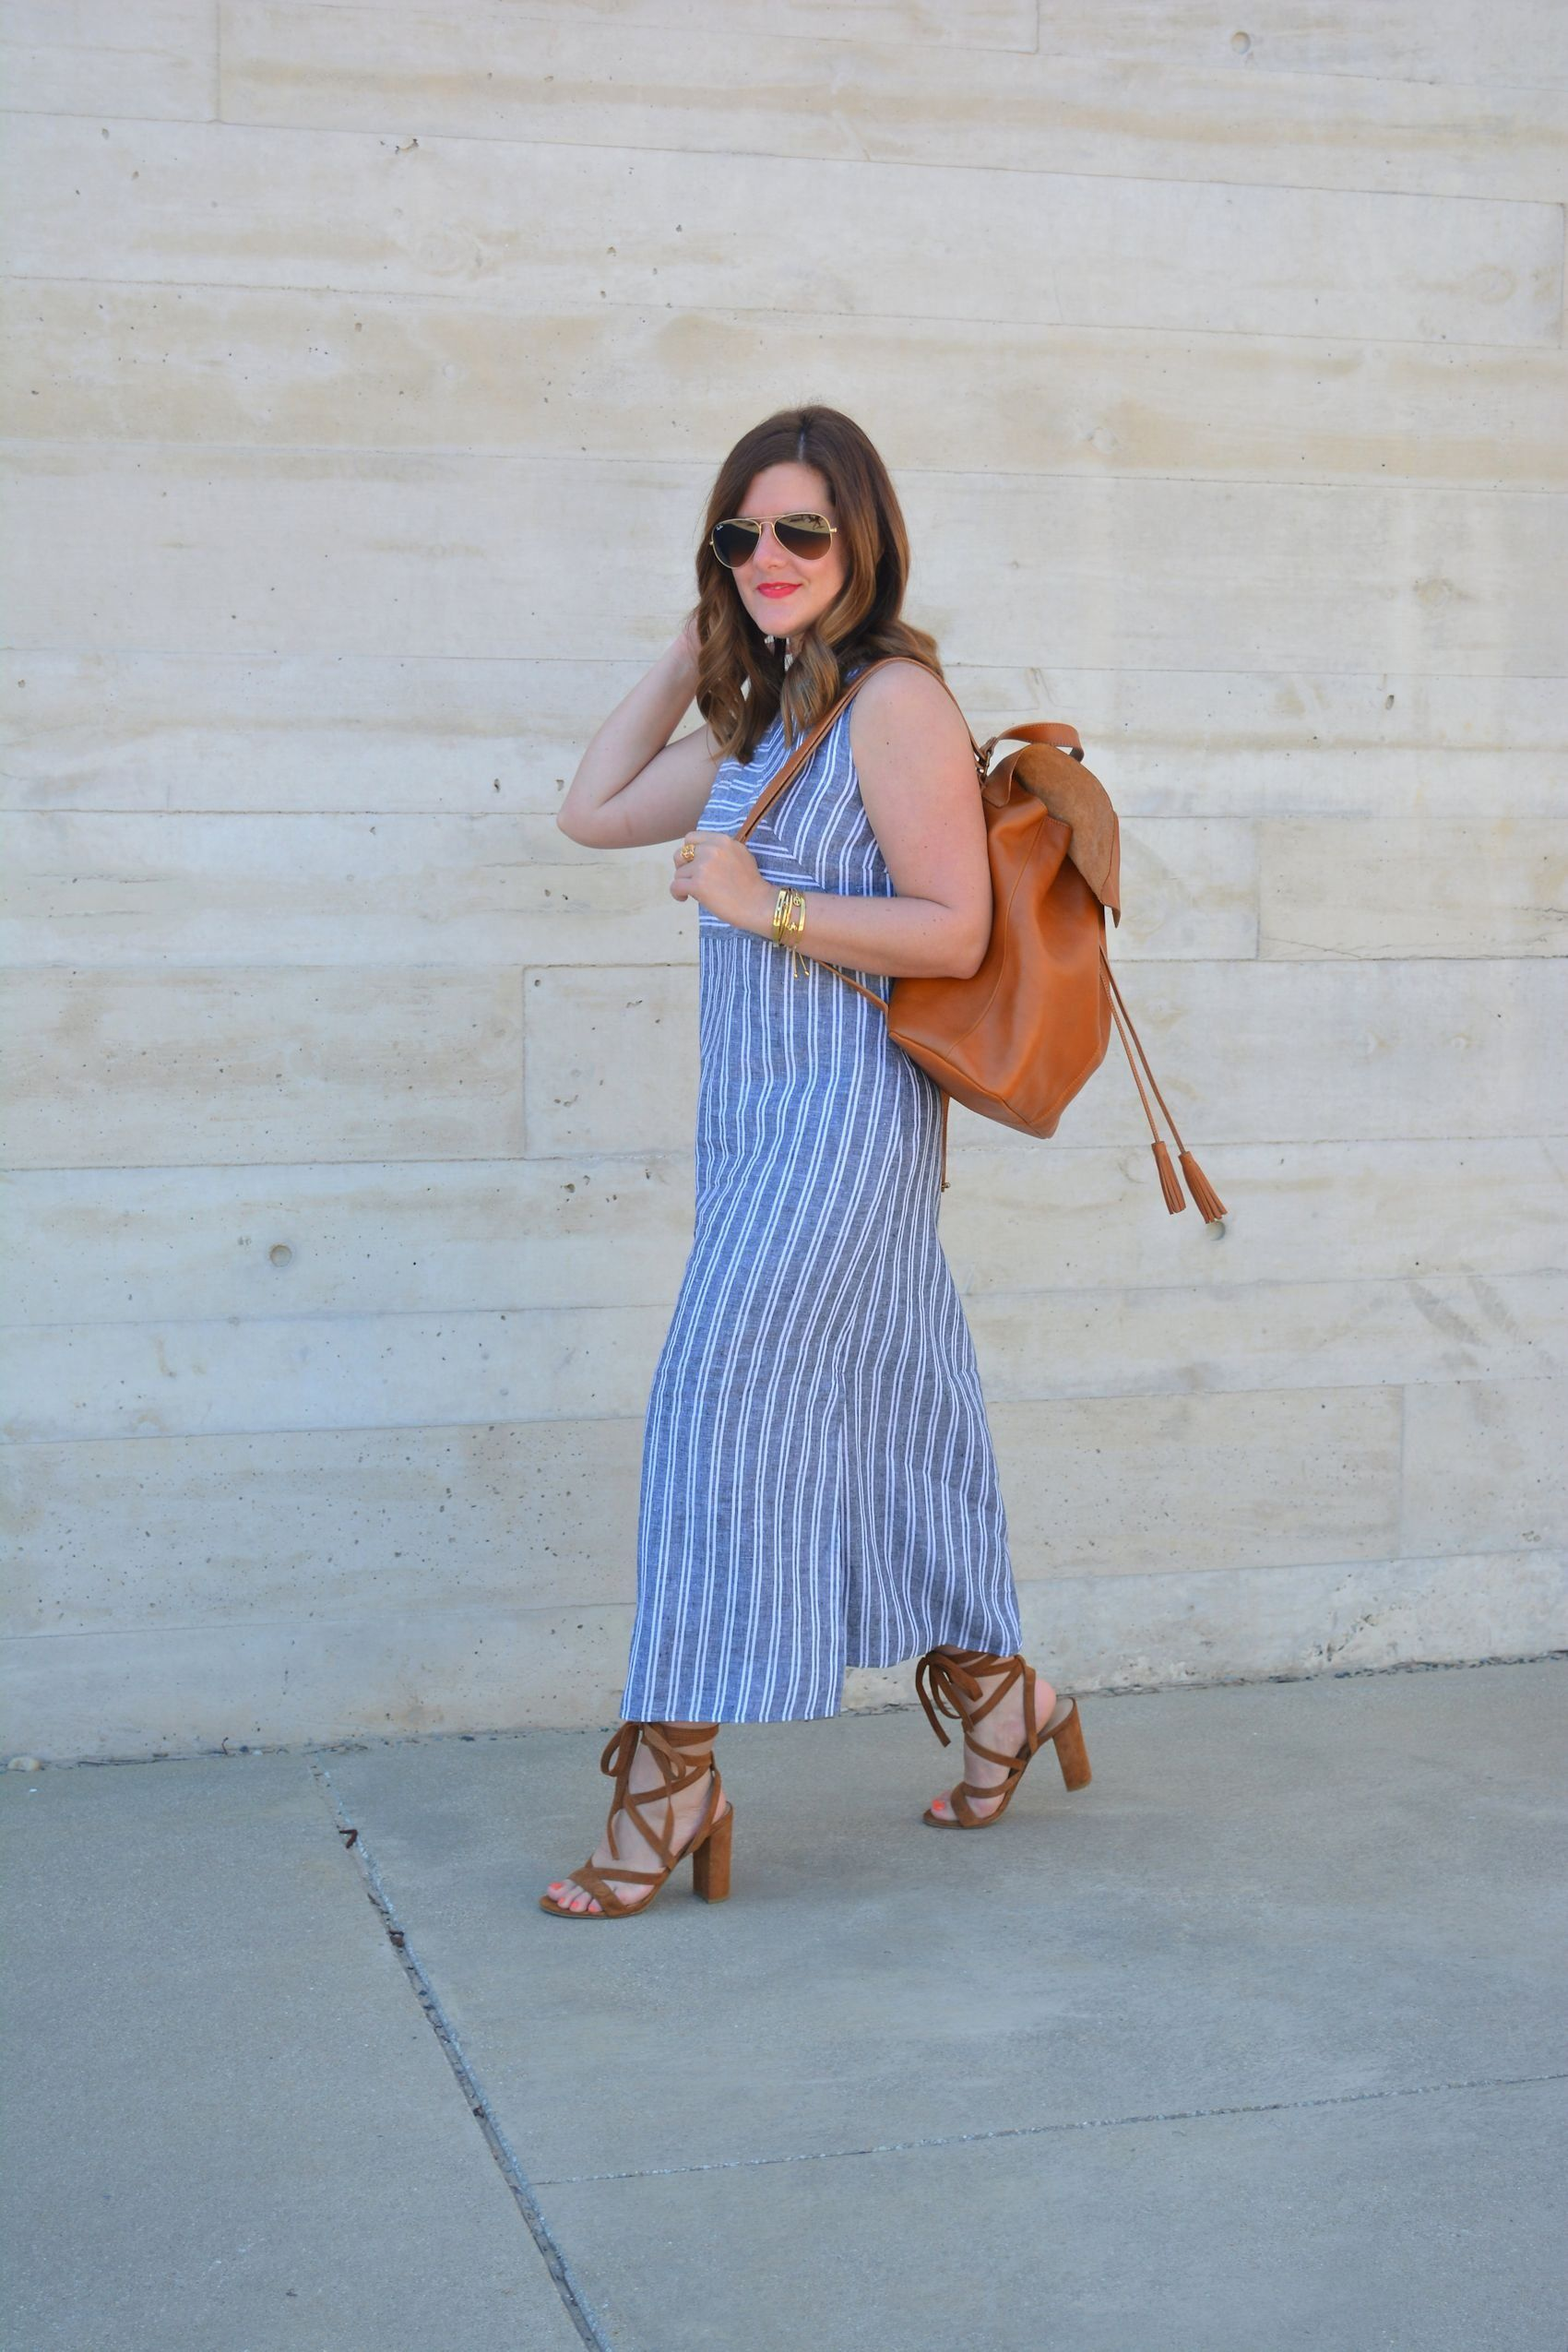 aa60fcfbad Anna from  annabaun in her J.Jill long striped linen dress and her J.Jill  leather backpack.